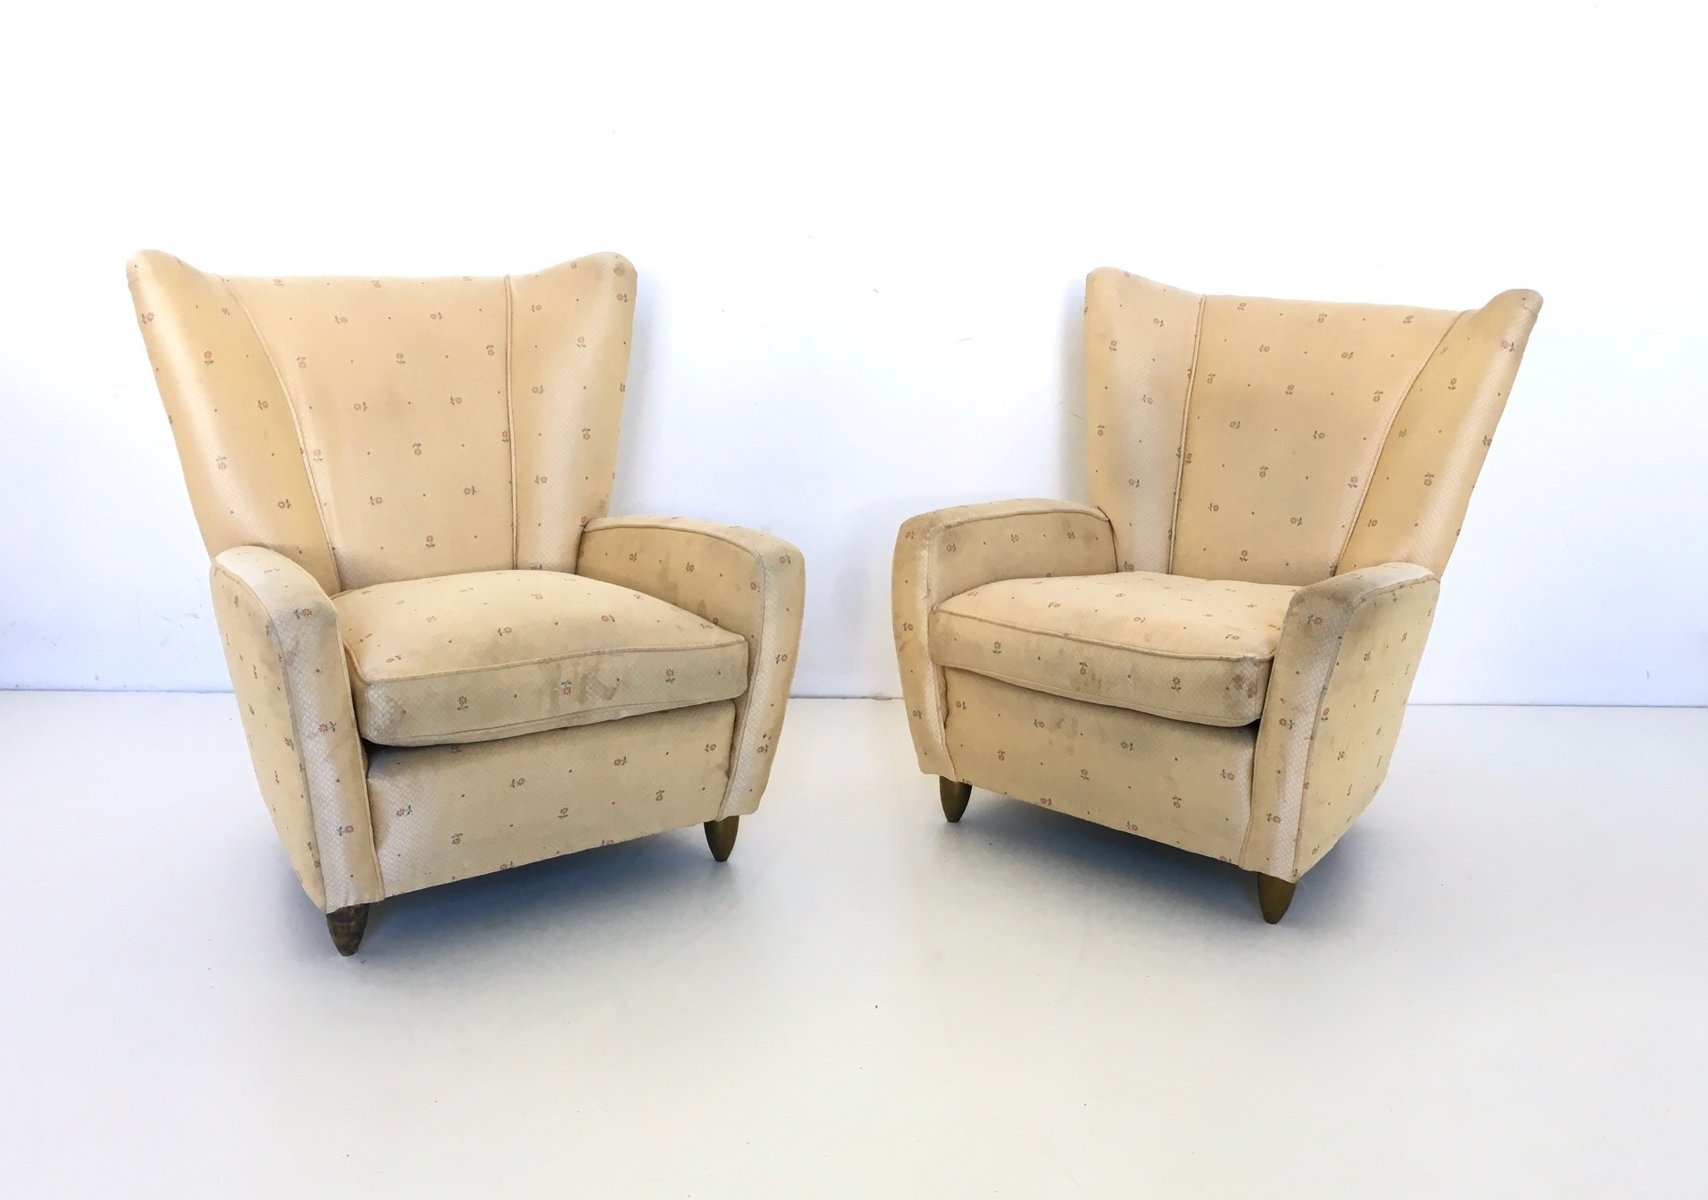 Italian living room set by paolo buffa 1950s for sale at for Living room furniture sets uk